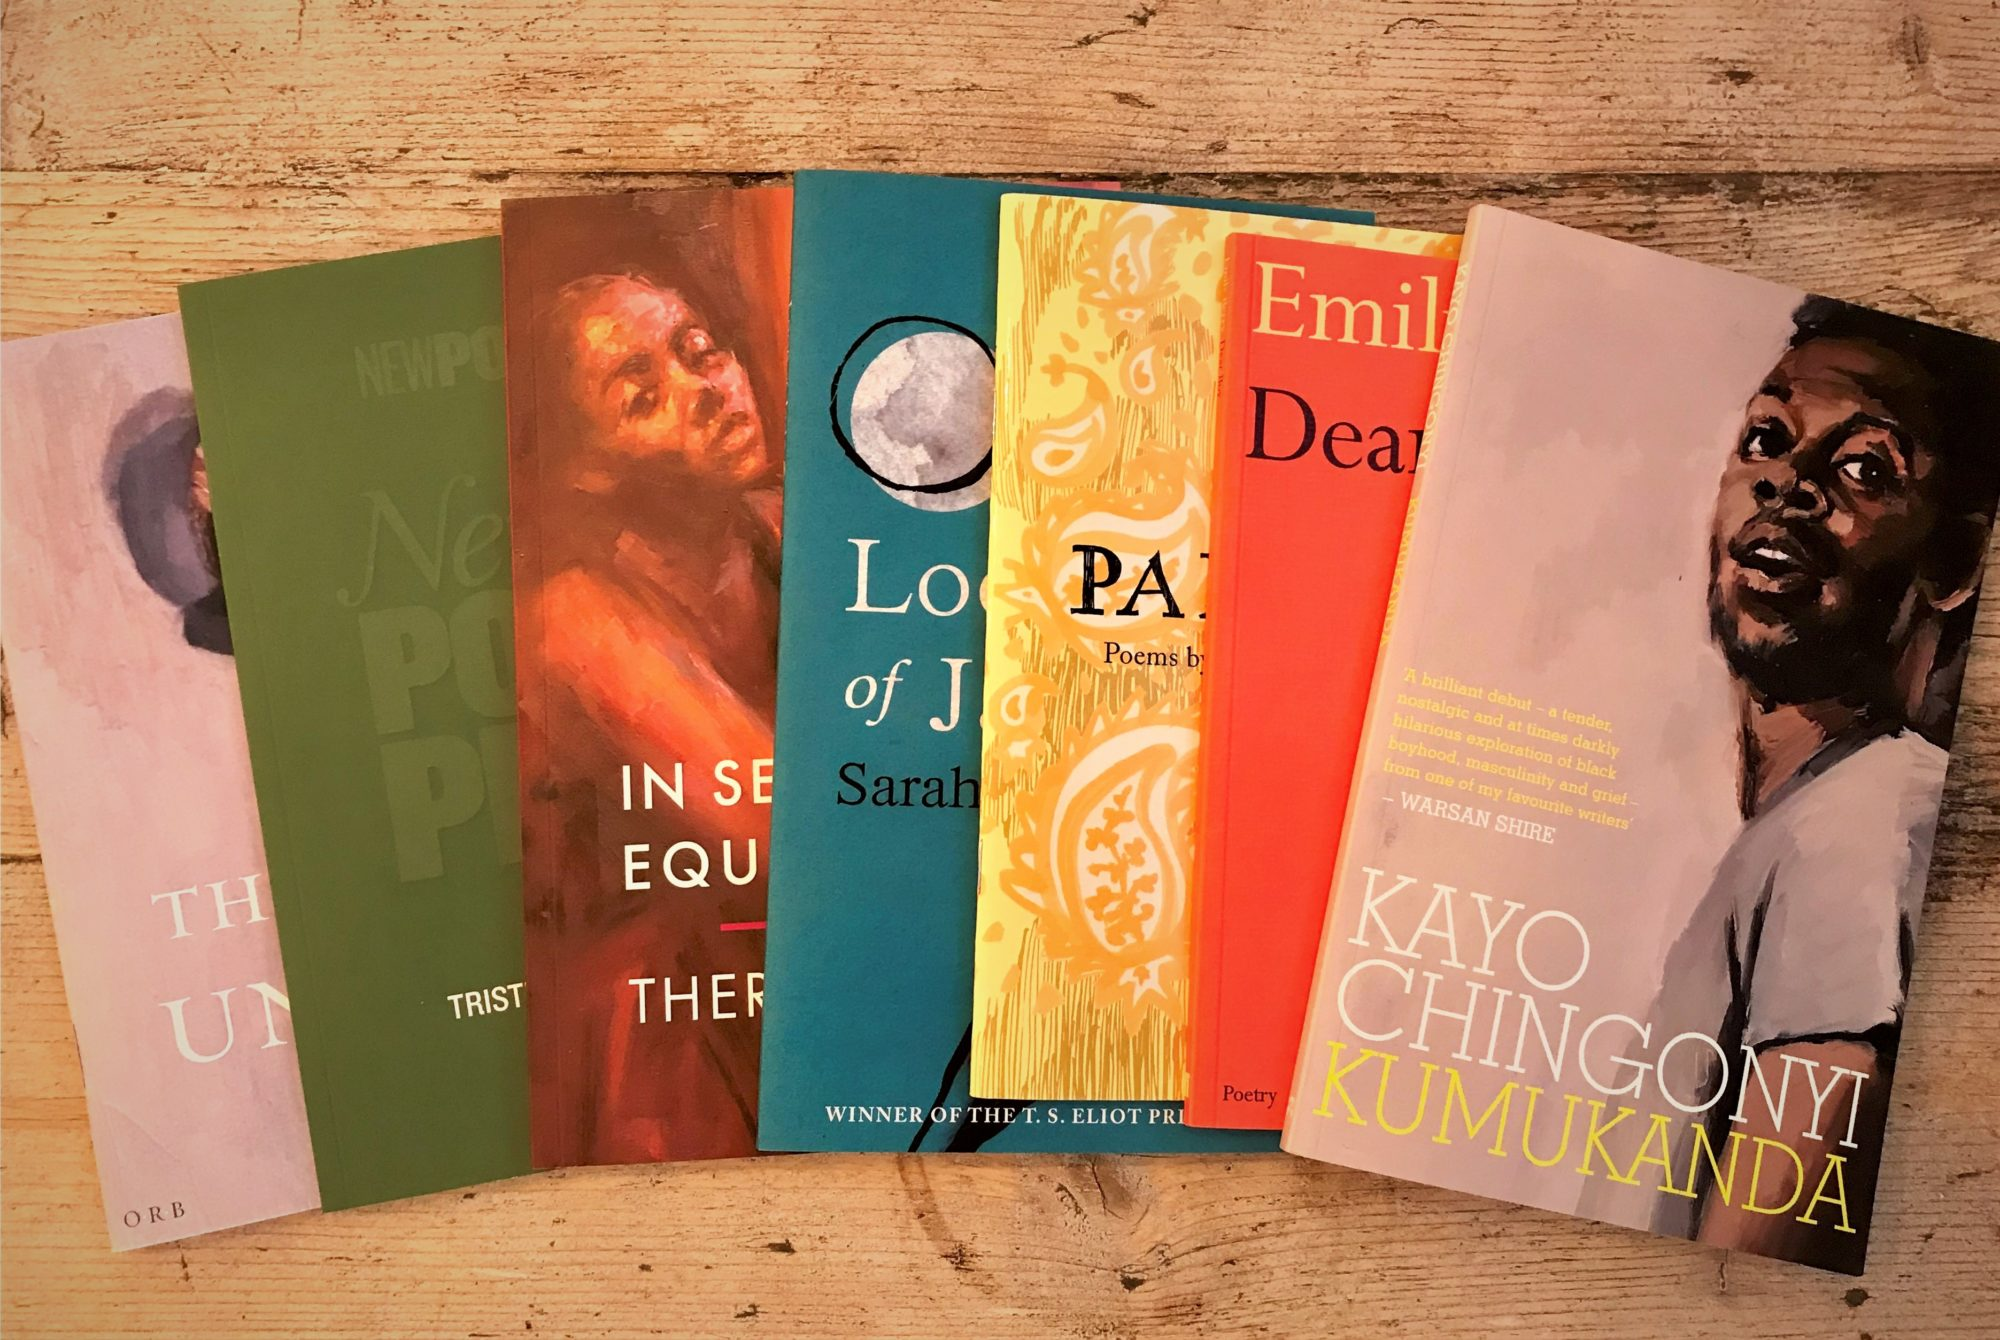 a photo of some first books, including books by Lisa Kiew, Tristram Fane Saunders, Theresa Lola, Sarah Howe, Rakhshan Rizwan, Emily Berry and Kayo Chingonyi